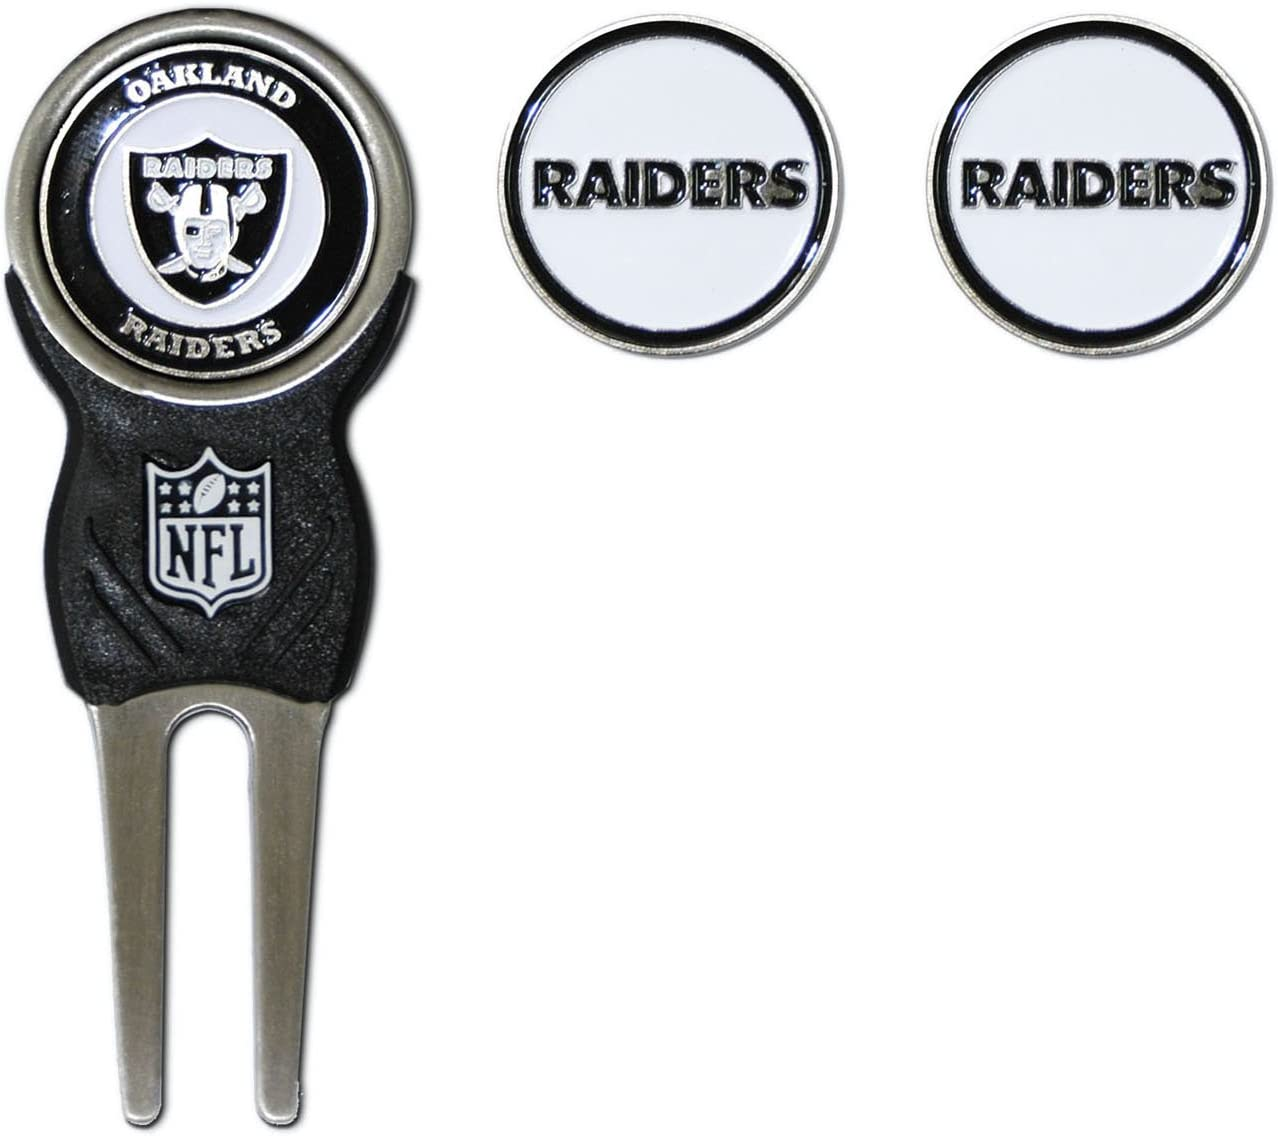 Team Golf NFL Kansas City Chiefs Divot Tool with 3 Golf Ball Markers Pack, Markers are Removable Magnetic Double-Sided Enamel : Golf Divot Tools : Sports & Outdoors